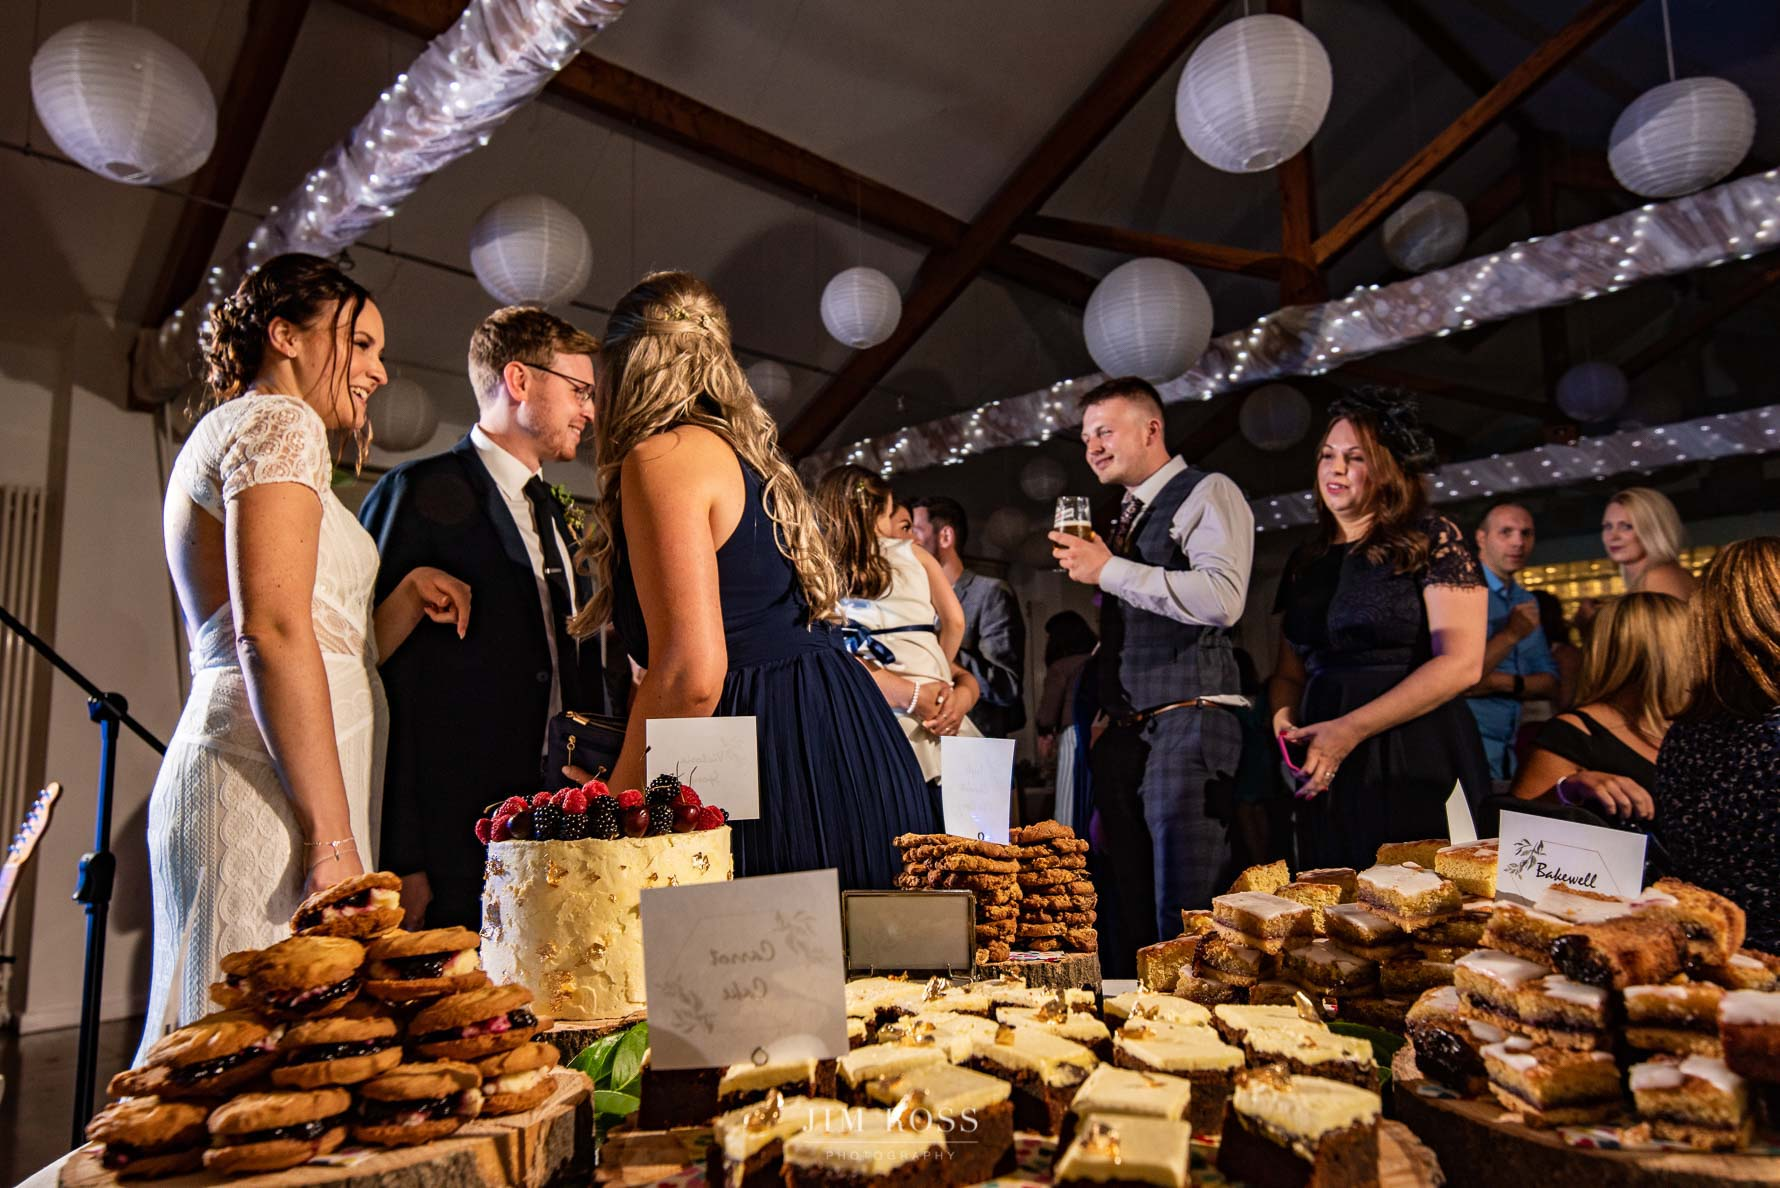 Cake table and wedding guests